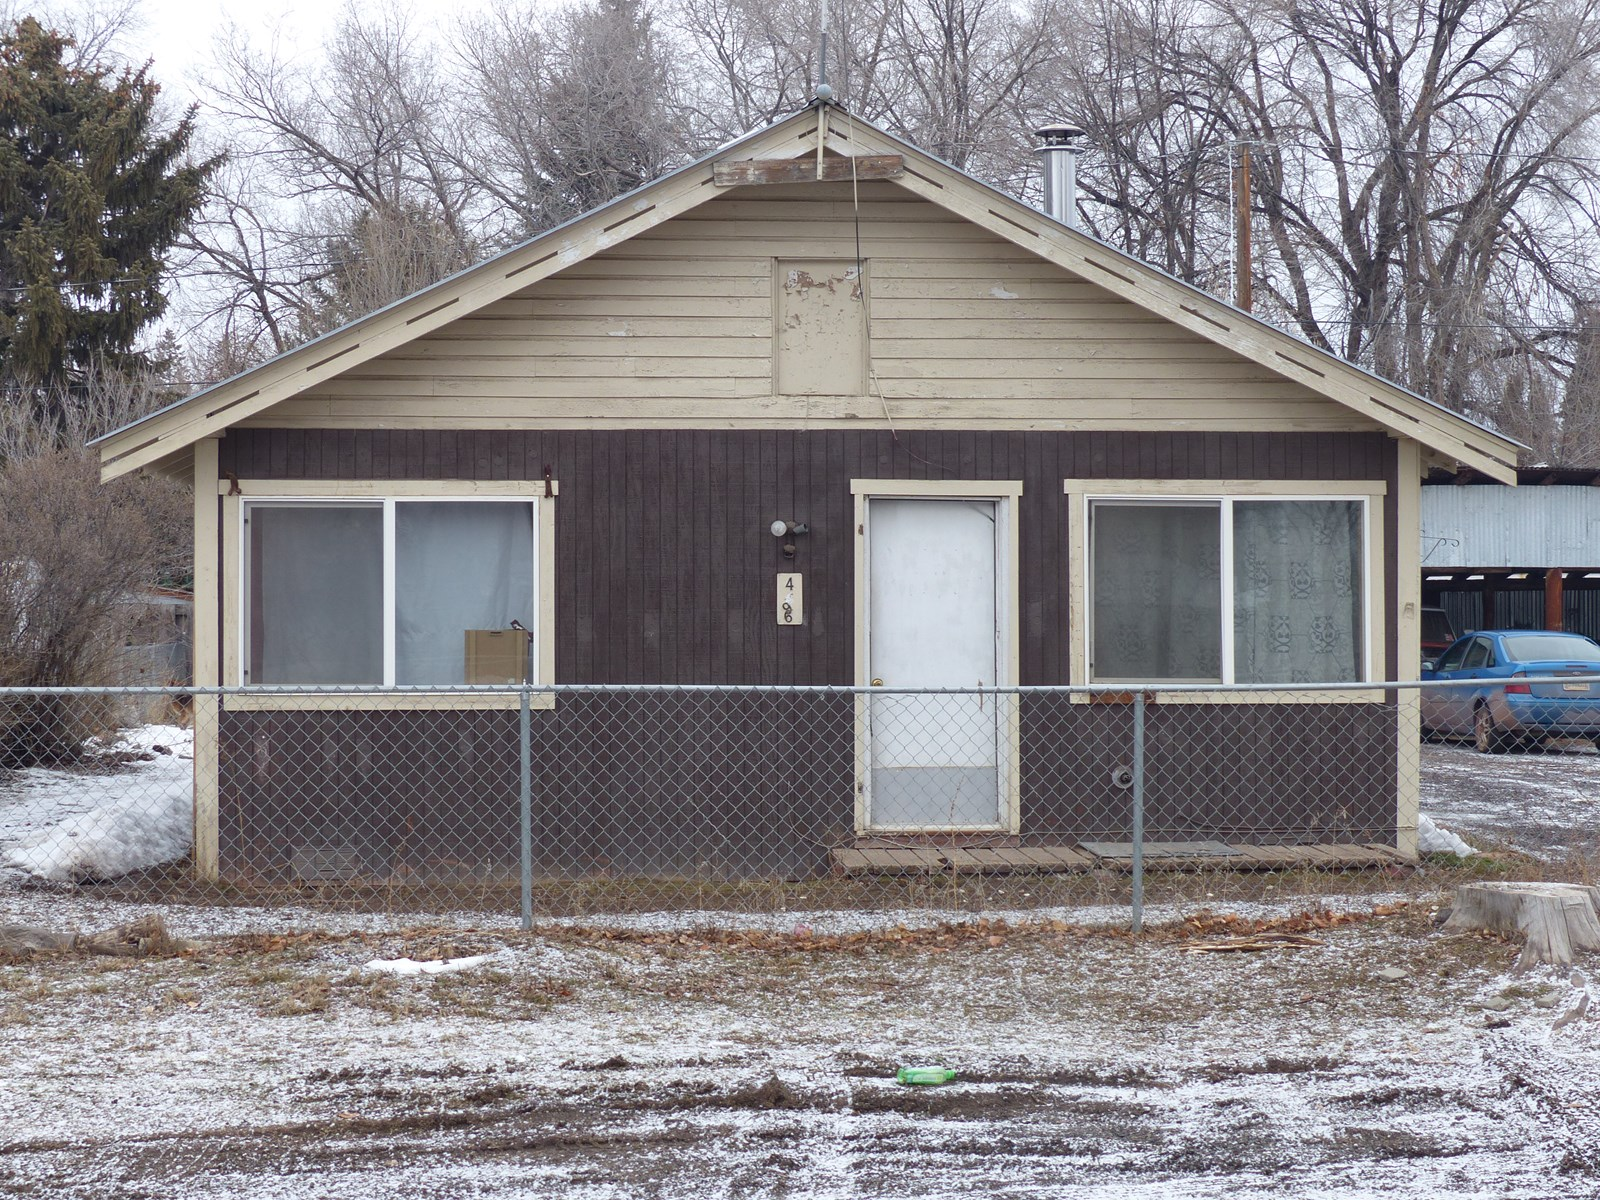 2 BDRM HOME FOR SALE IN BURNS OR